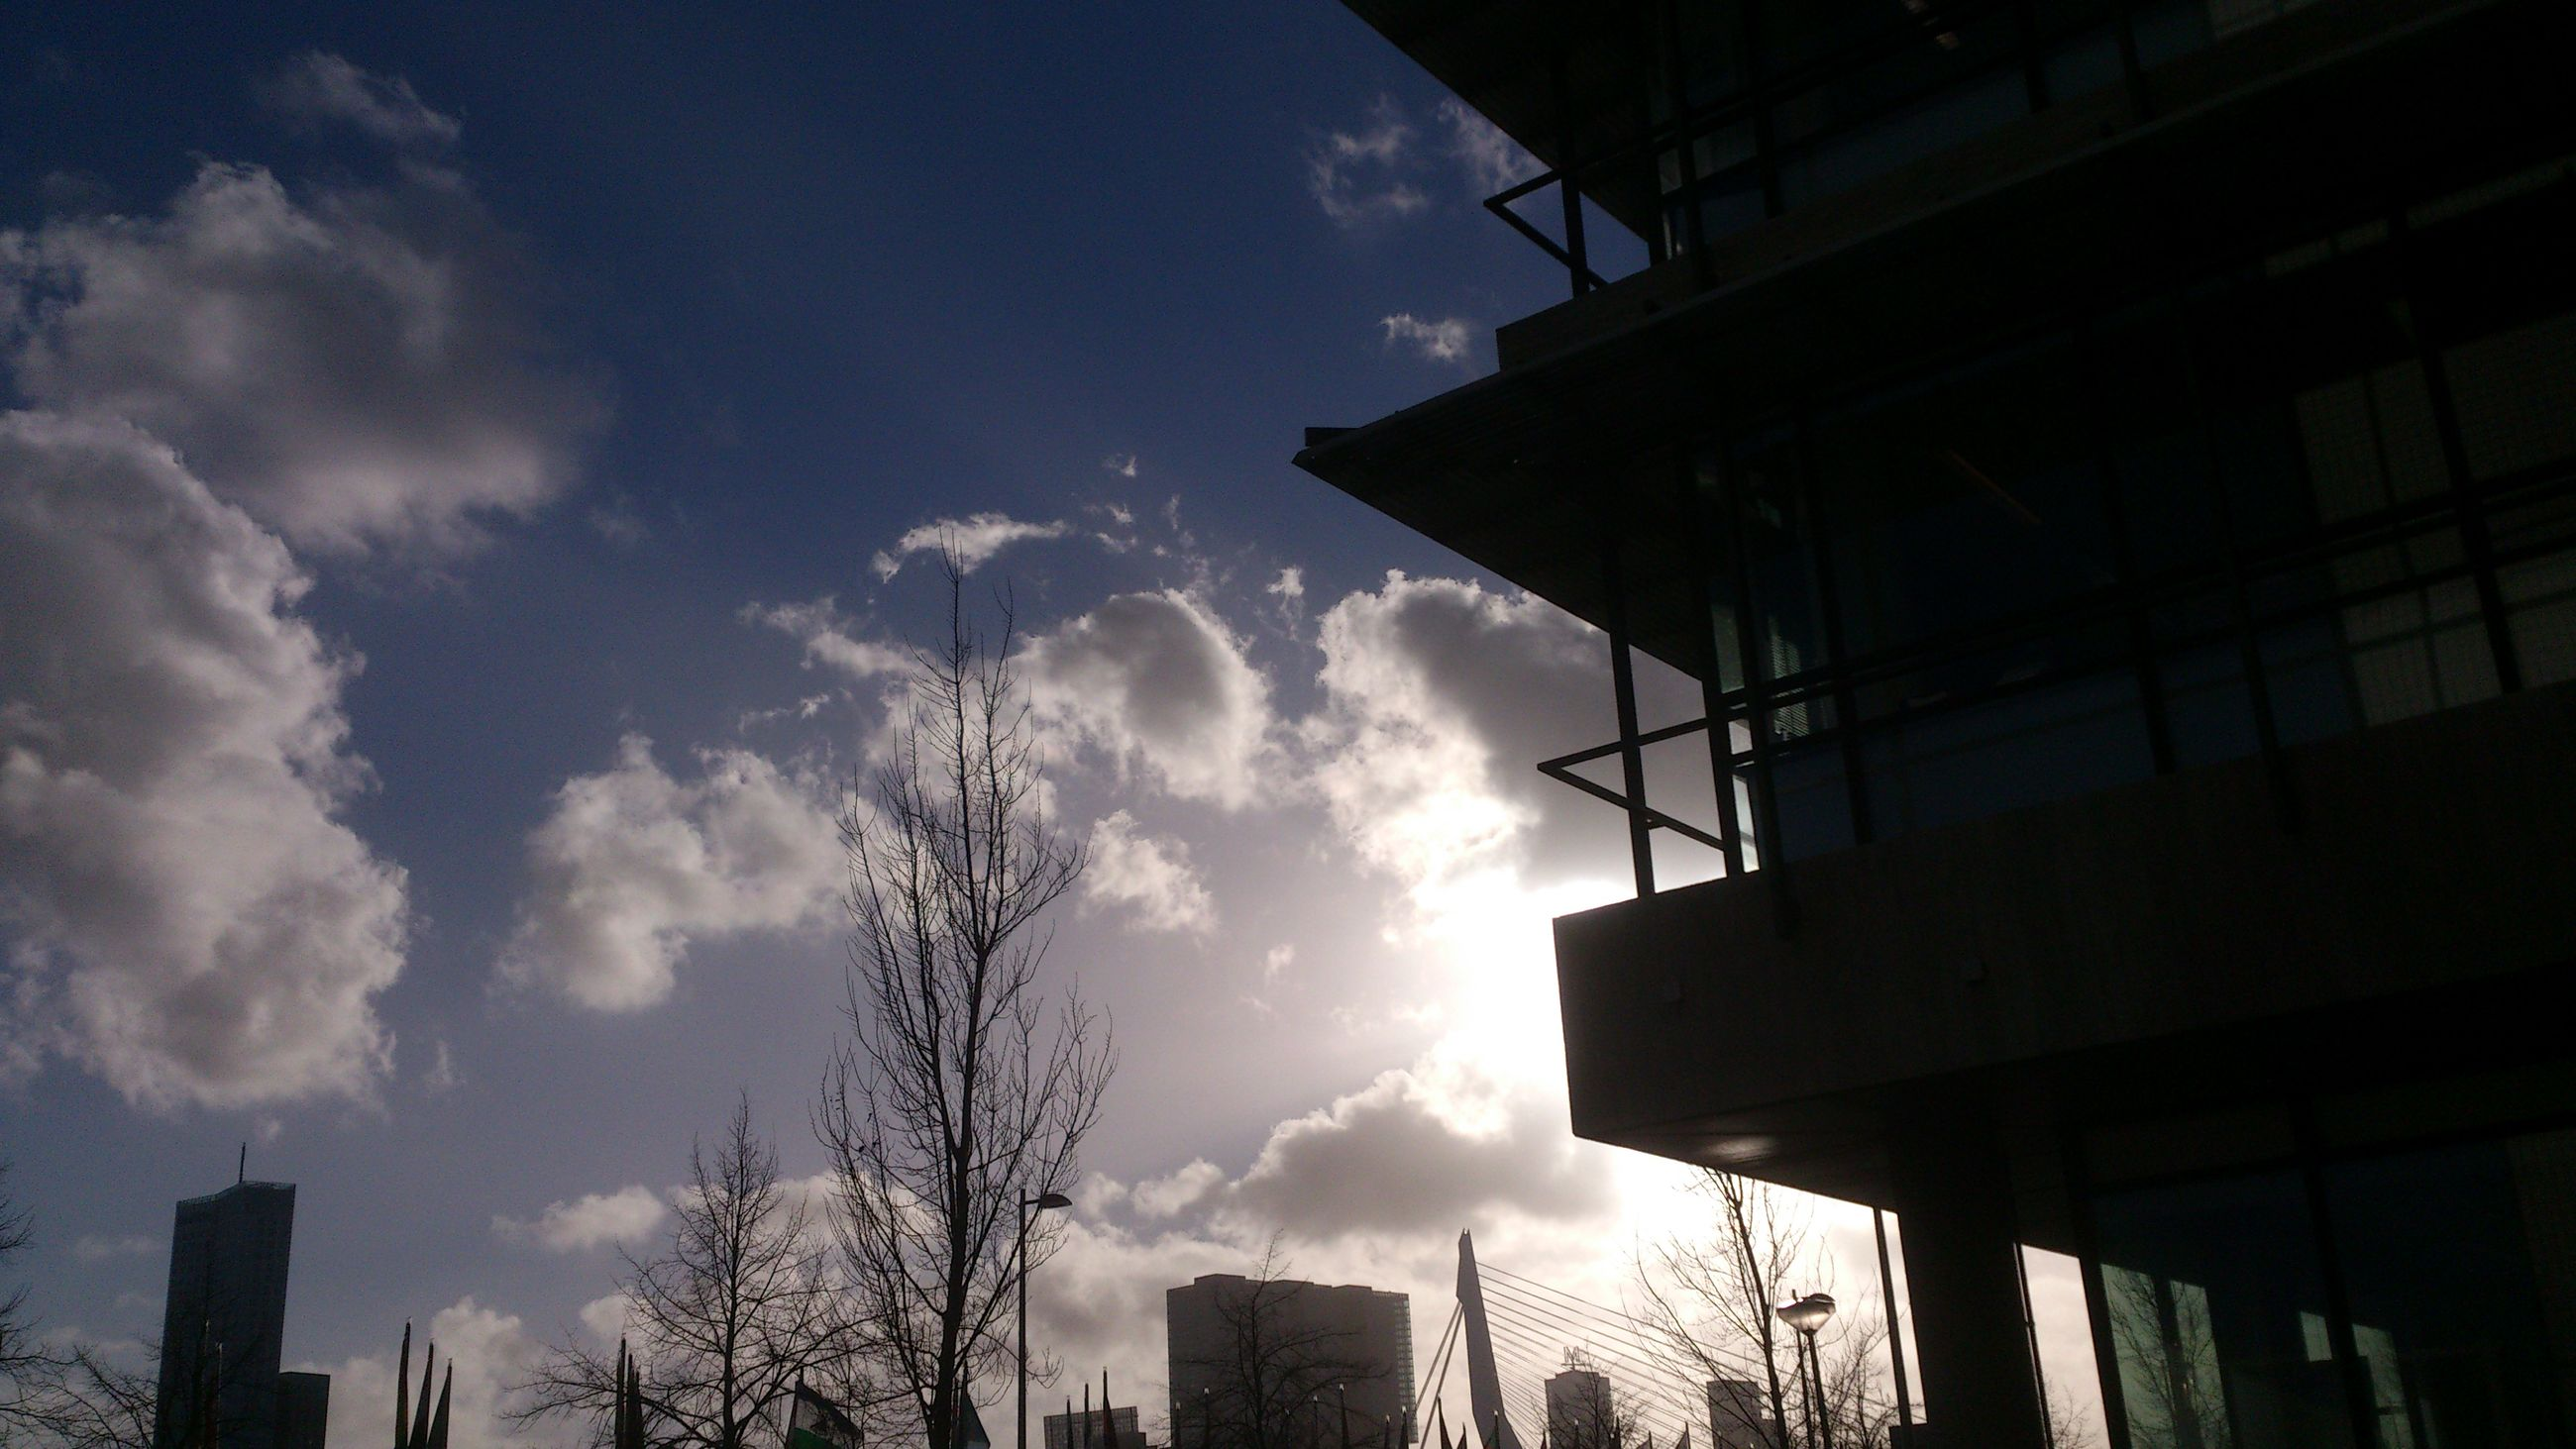 building exterior, architecture, built structure, low angle view, sky, cloud - sky, building, city, silhouette, cloud, residential building, residential structure, sunlight, window, house, cloudy, outdoors, sunbeam, no people, day